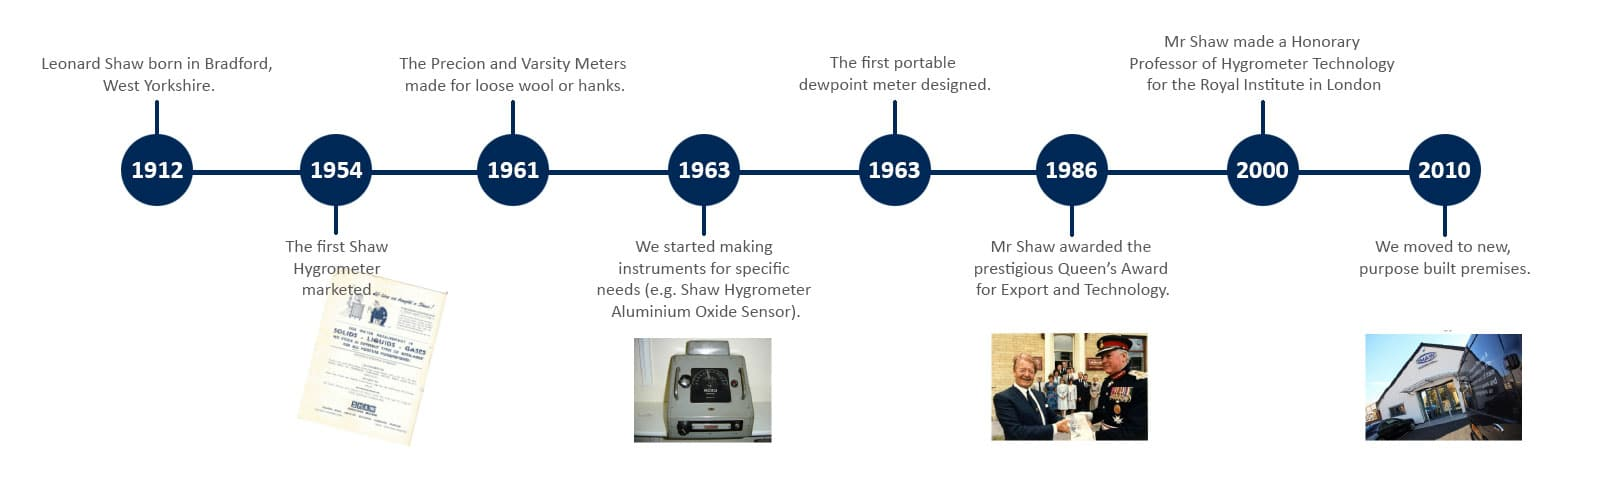 Shaw Moisture Meters history timeline